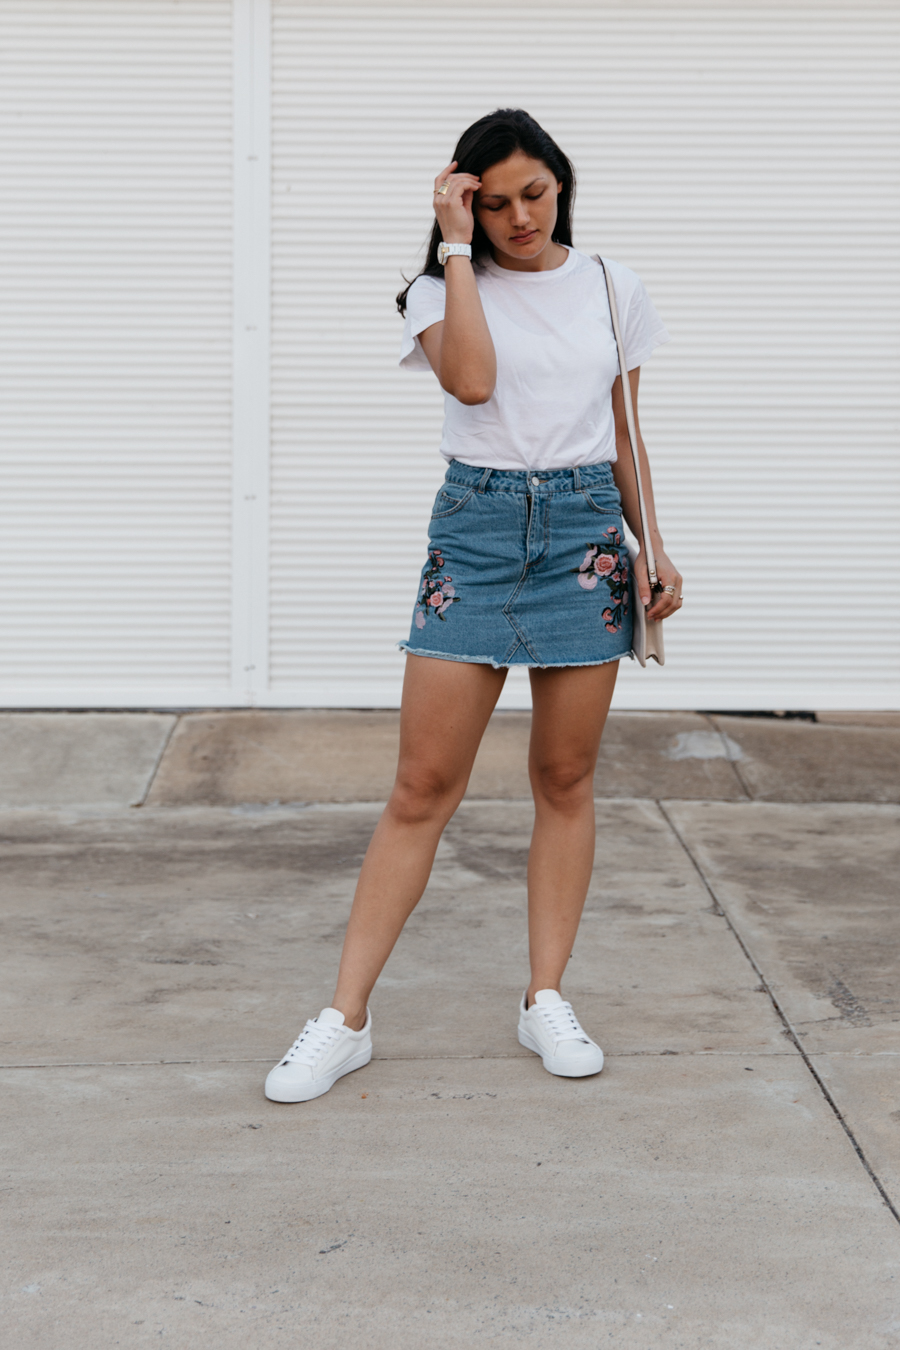 Simple denim skirt outfit.